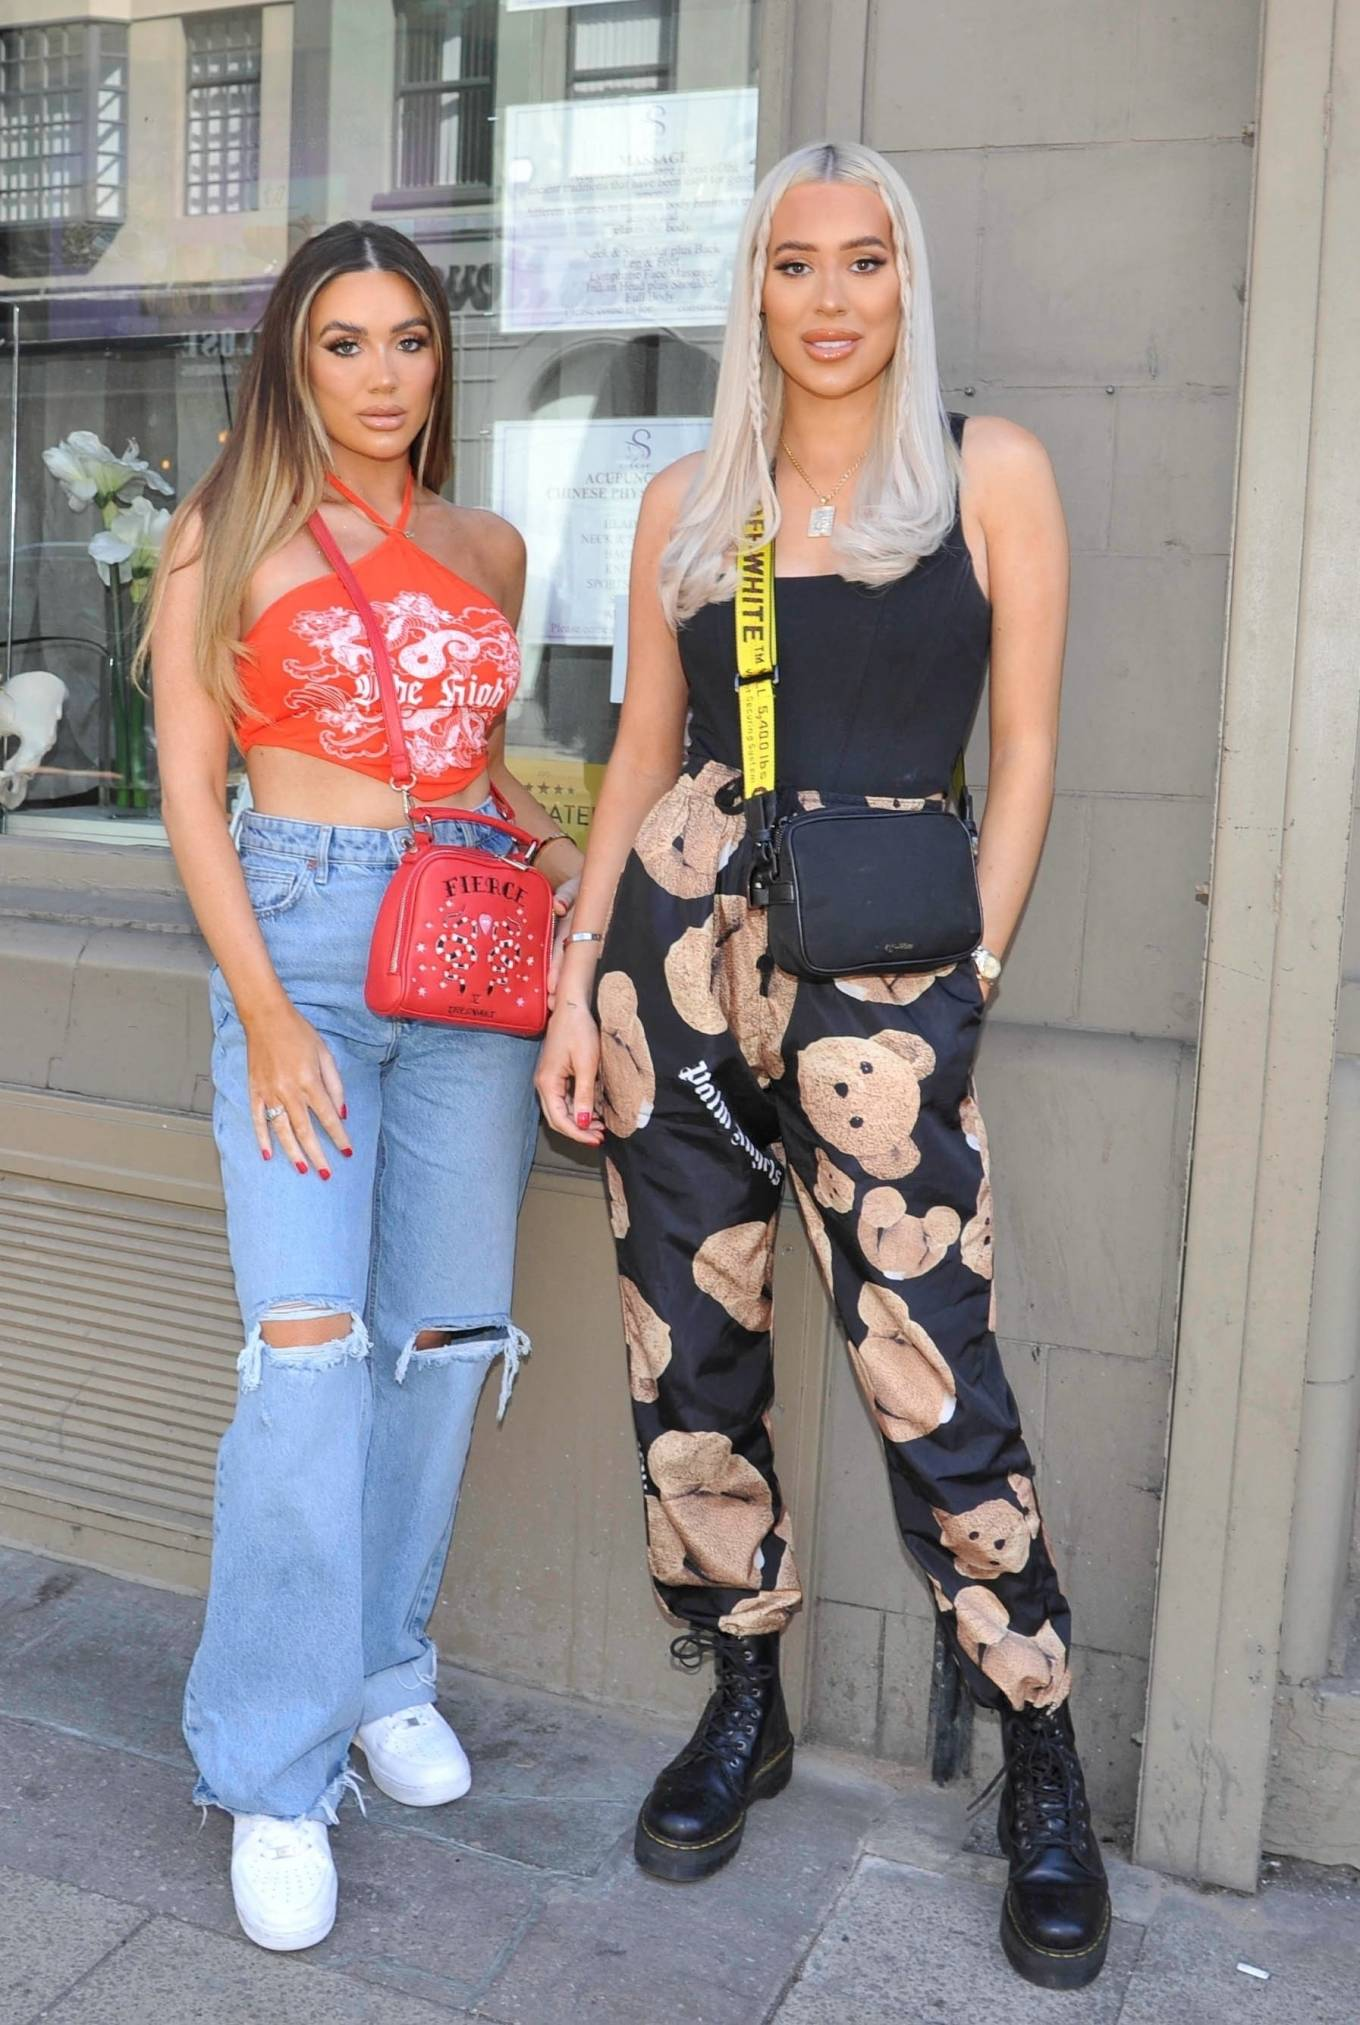 Demi Sims 2021 : Demi Sims – With Frankie out at Boujee bar an restaraunt in Manchester-08